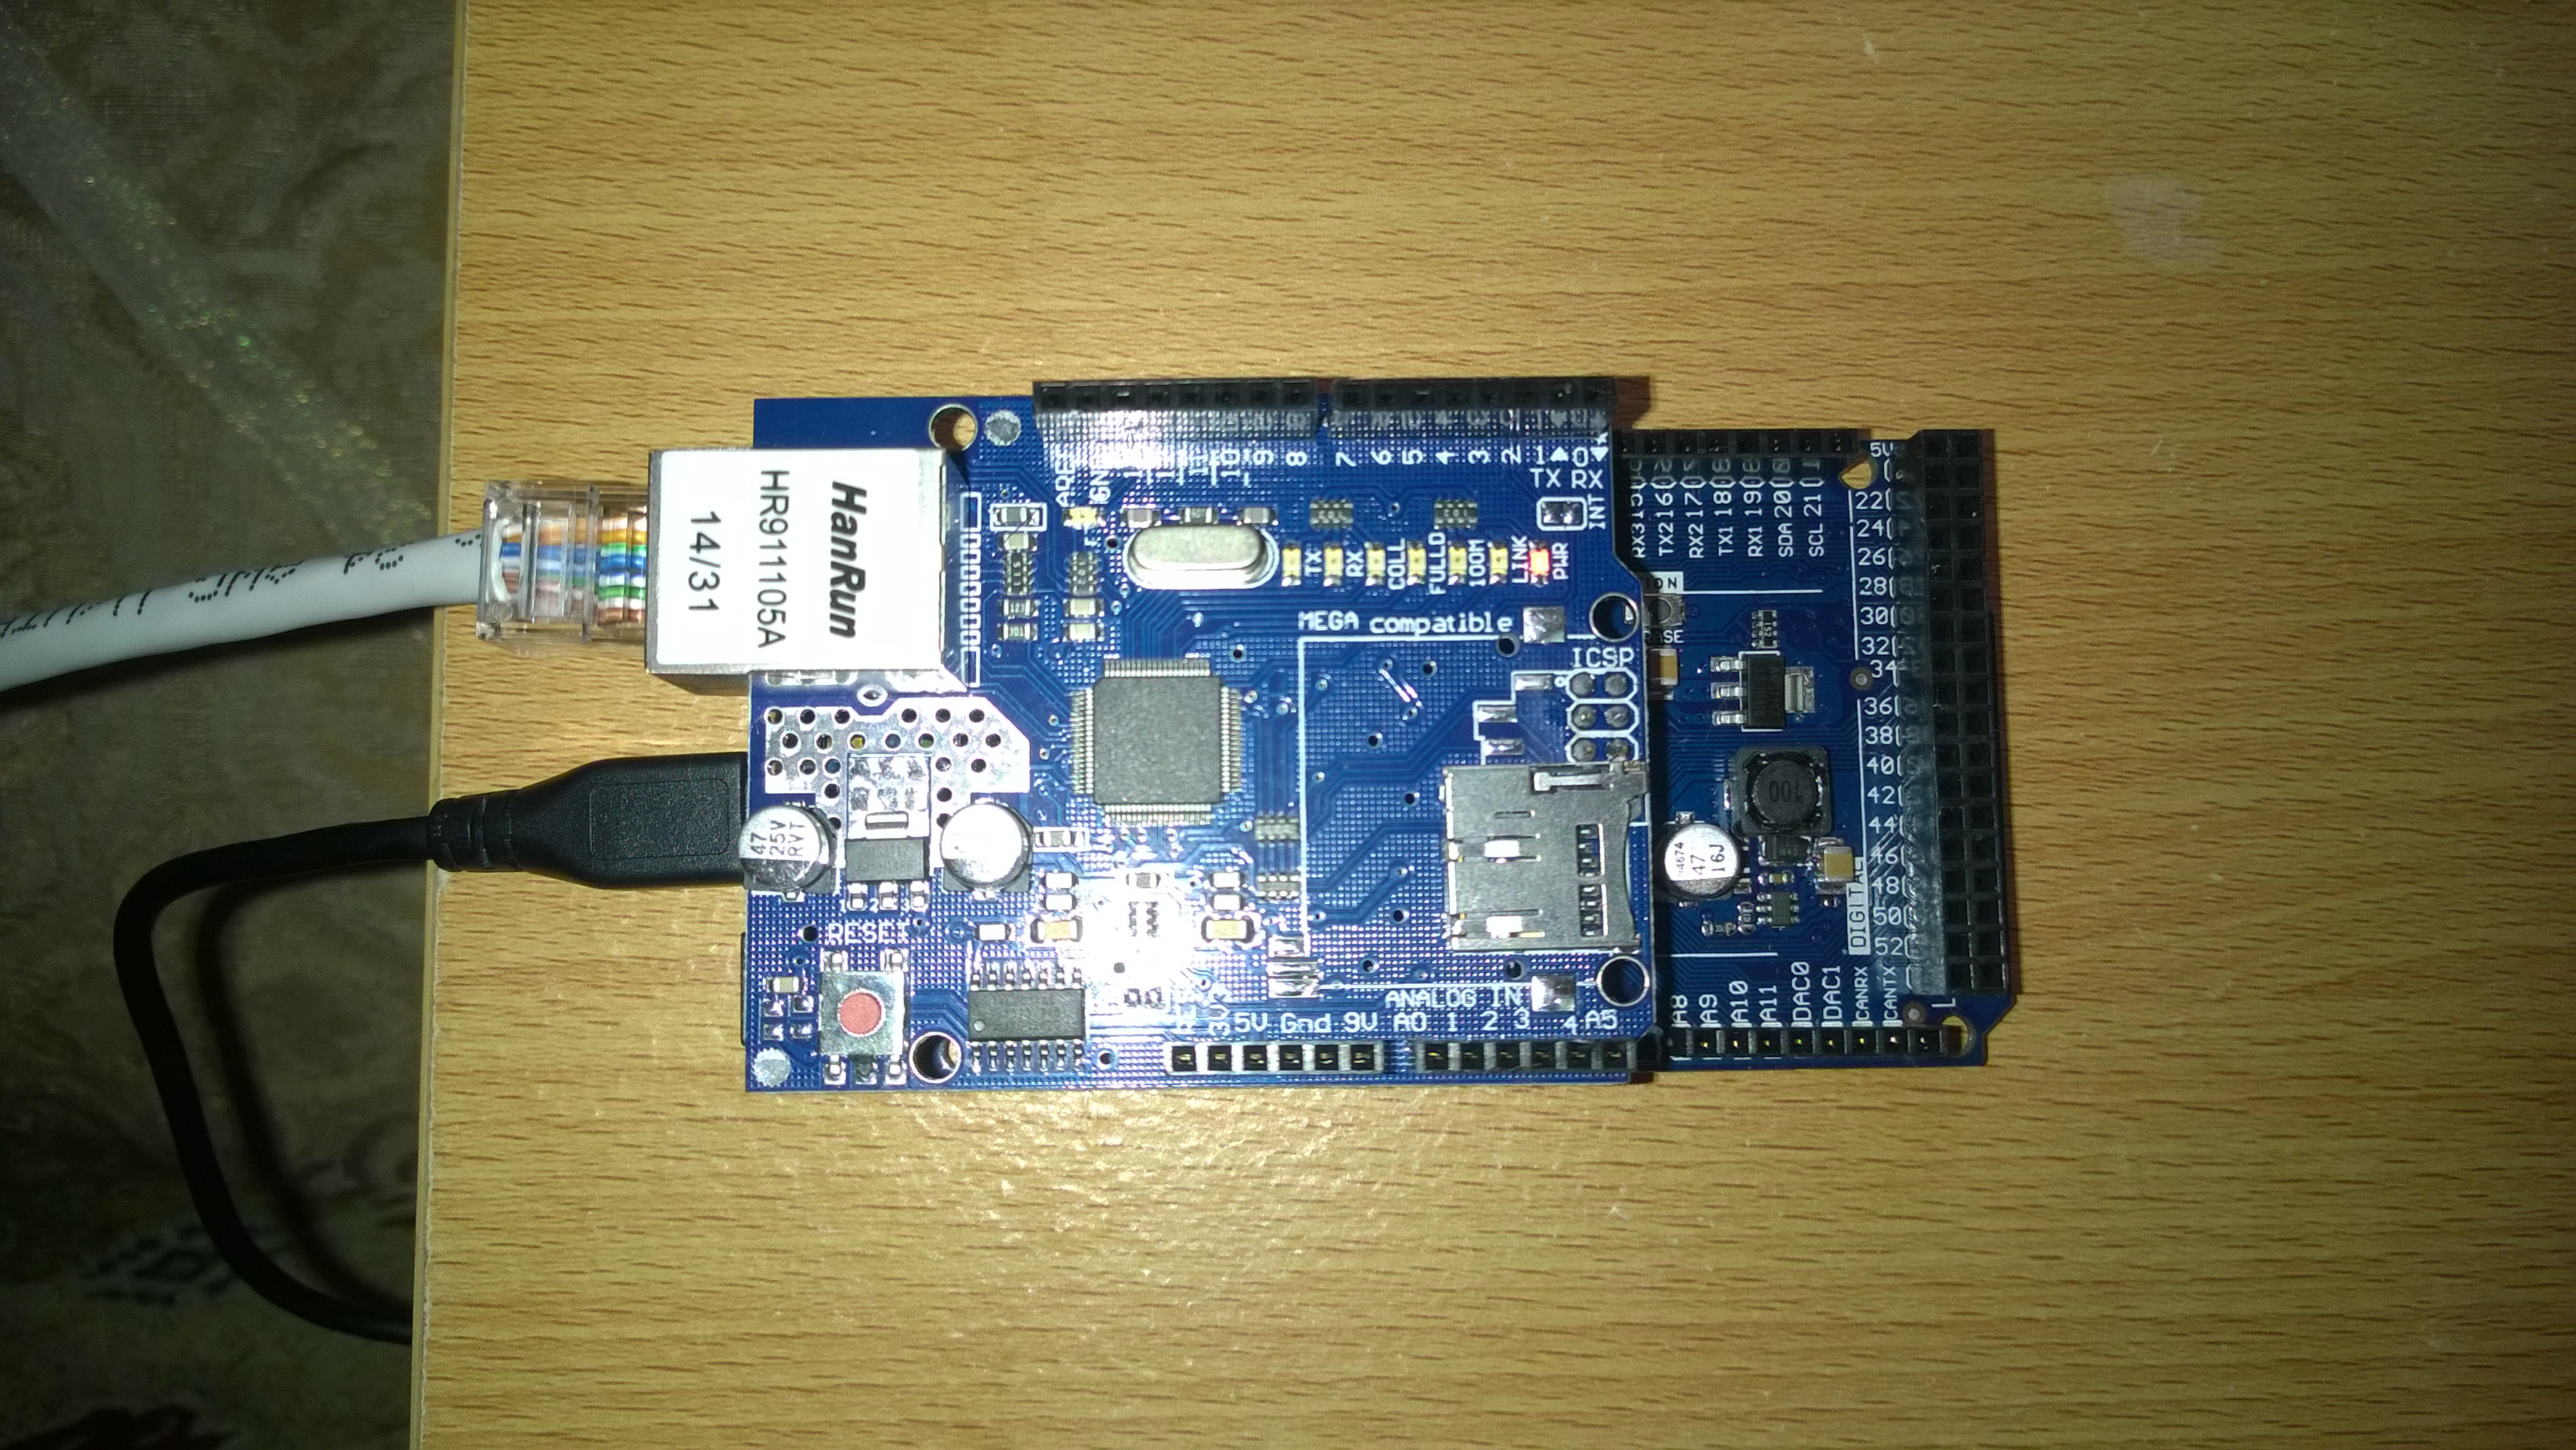 At esp8266 firmware